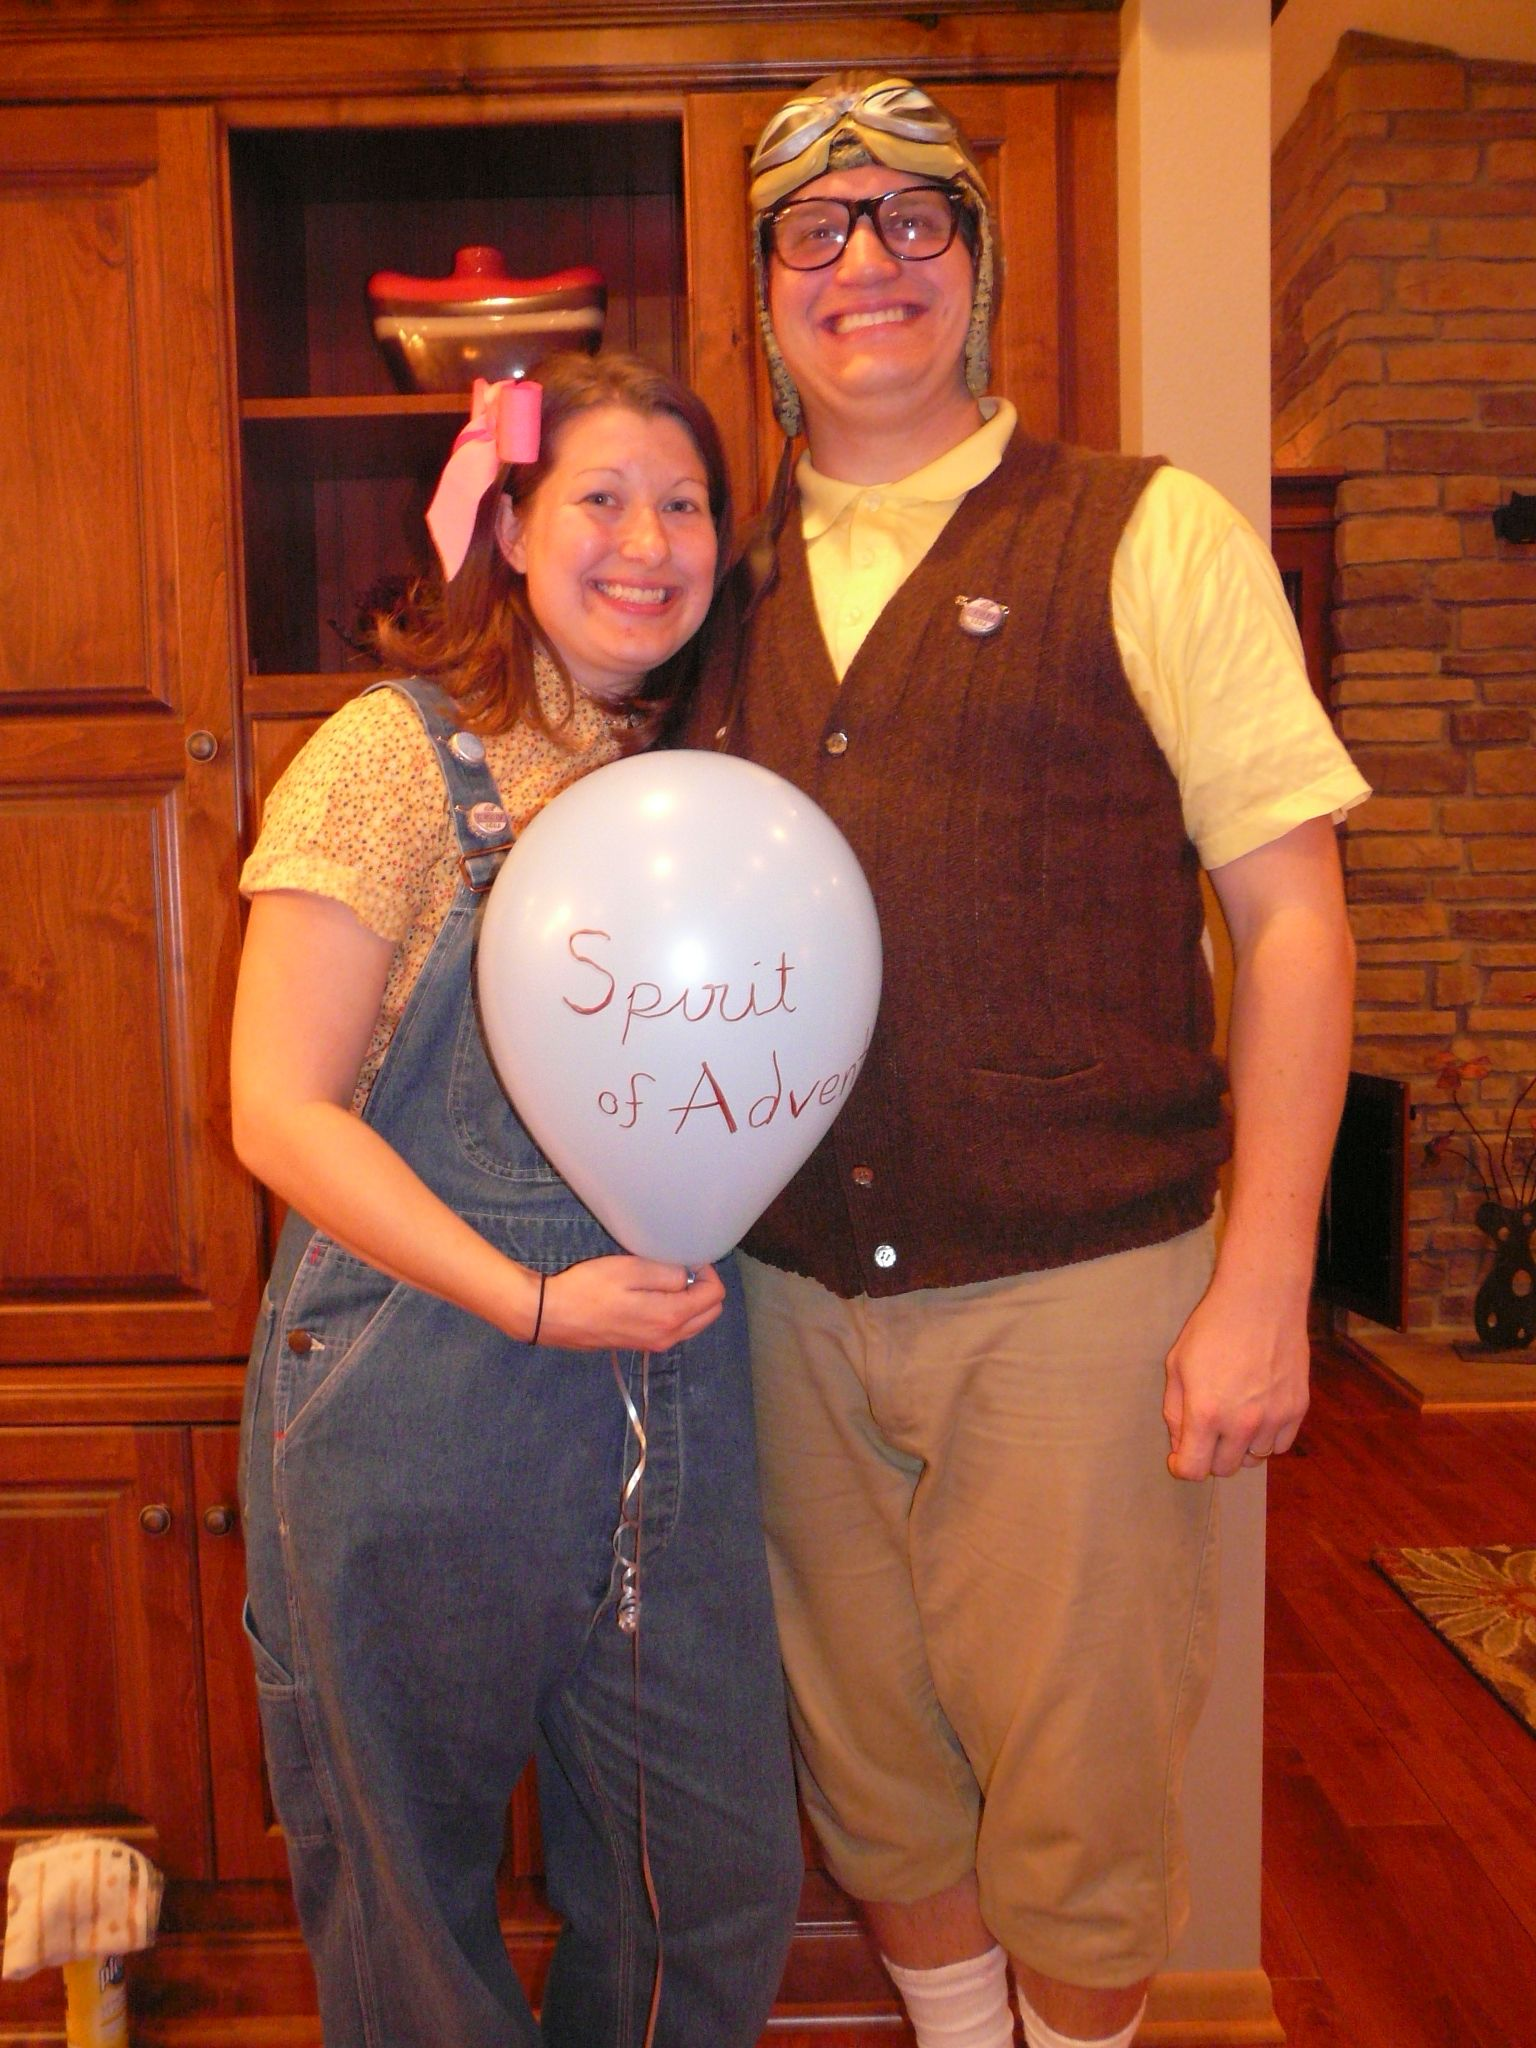 Halloween Costumes 2011 | Halloween costumes, Halloween ...Young Carl And Ellie Disneybound